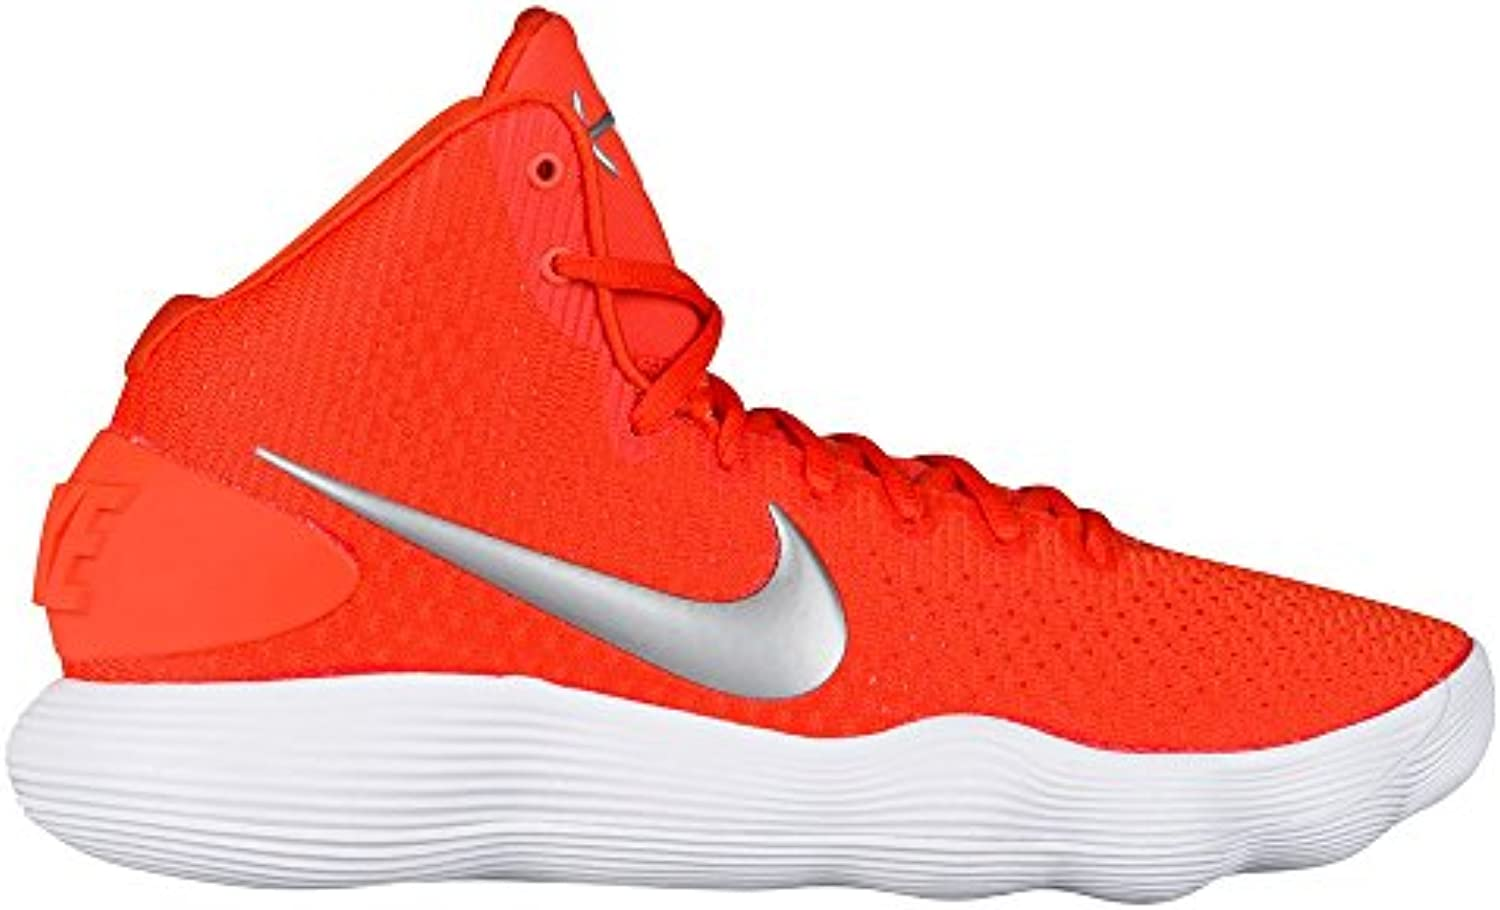 Man/Woman NIKE Men's React Hyperdunk 2017 Nylon Running Shoes Shoes Shoes Durable service Bright colors Amoy BH40376 700644